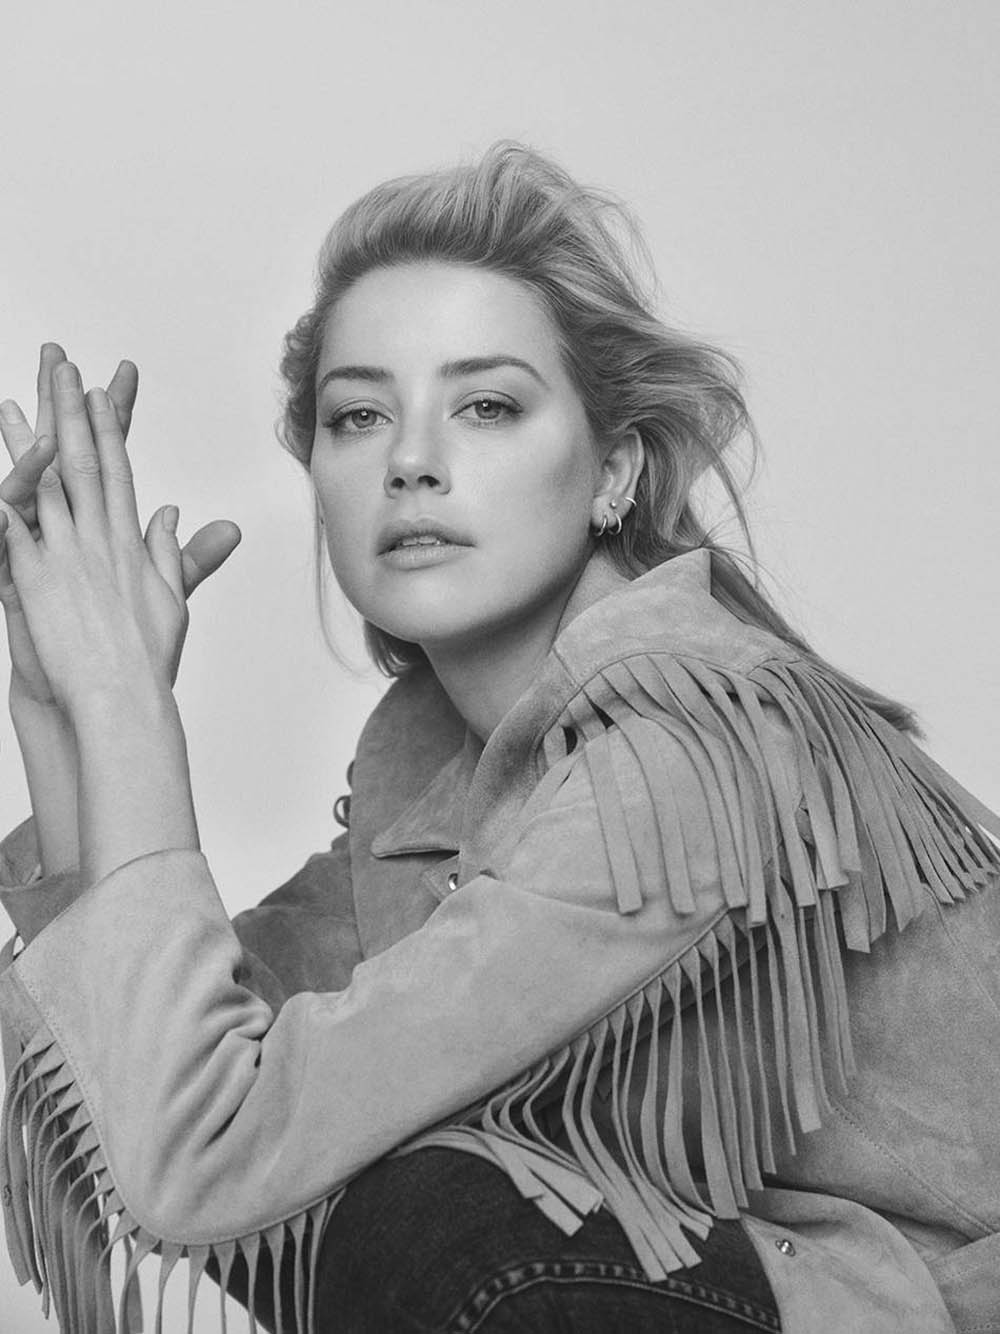 Amber Heard covers Porter Edit November 30th, 2018 by Olivia Malone